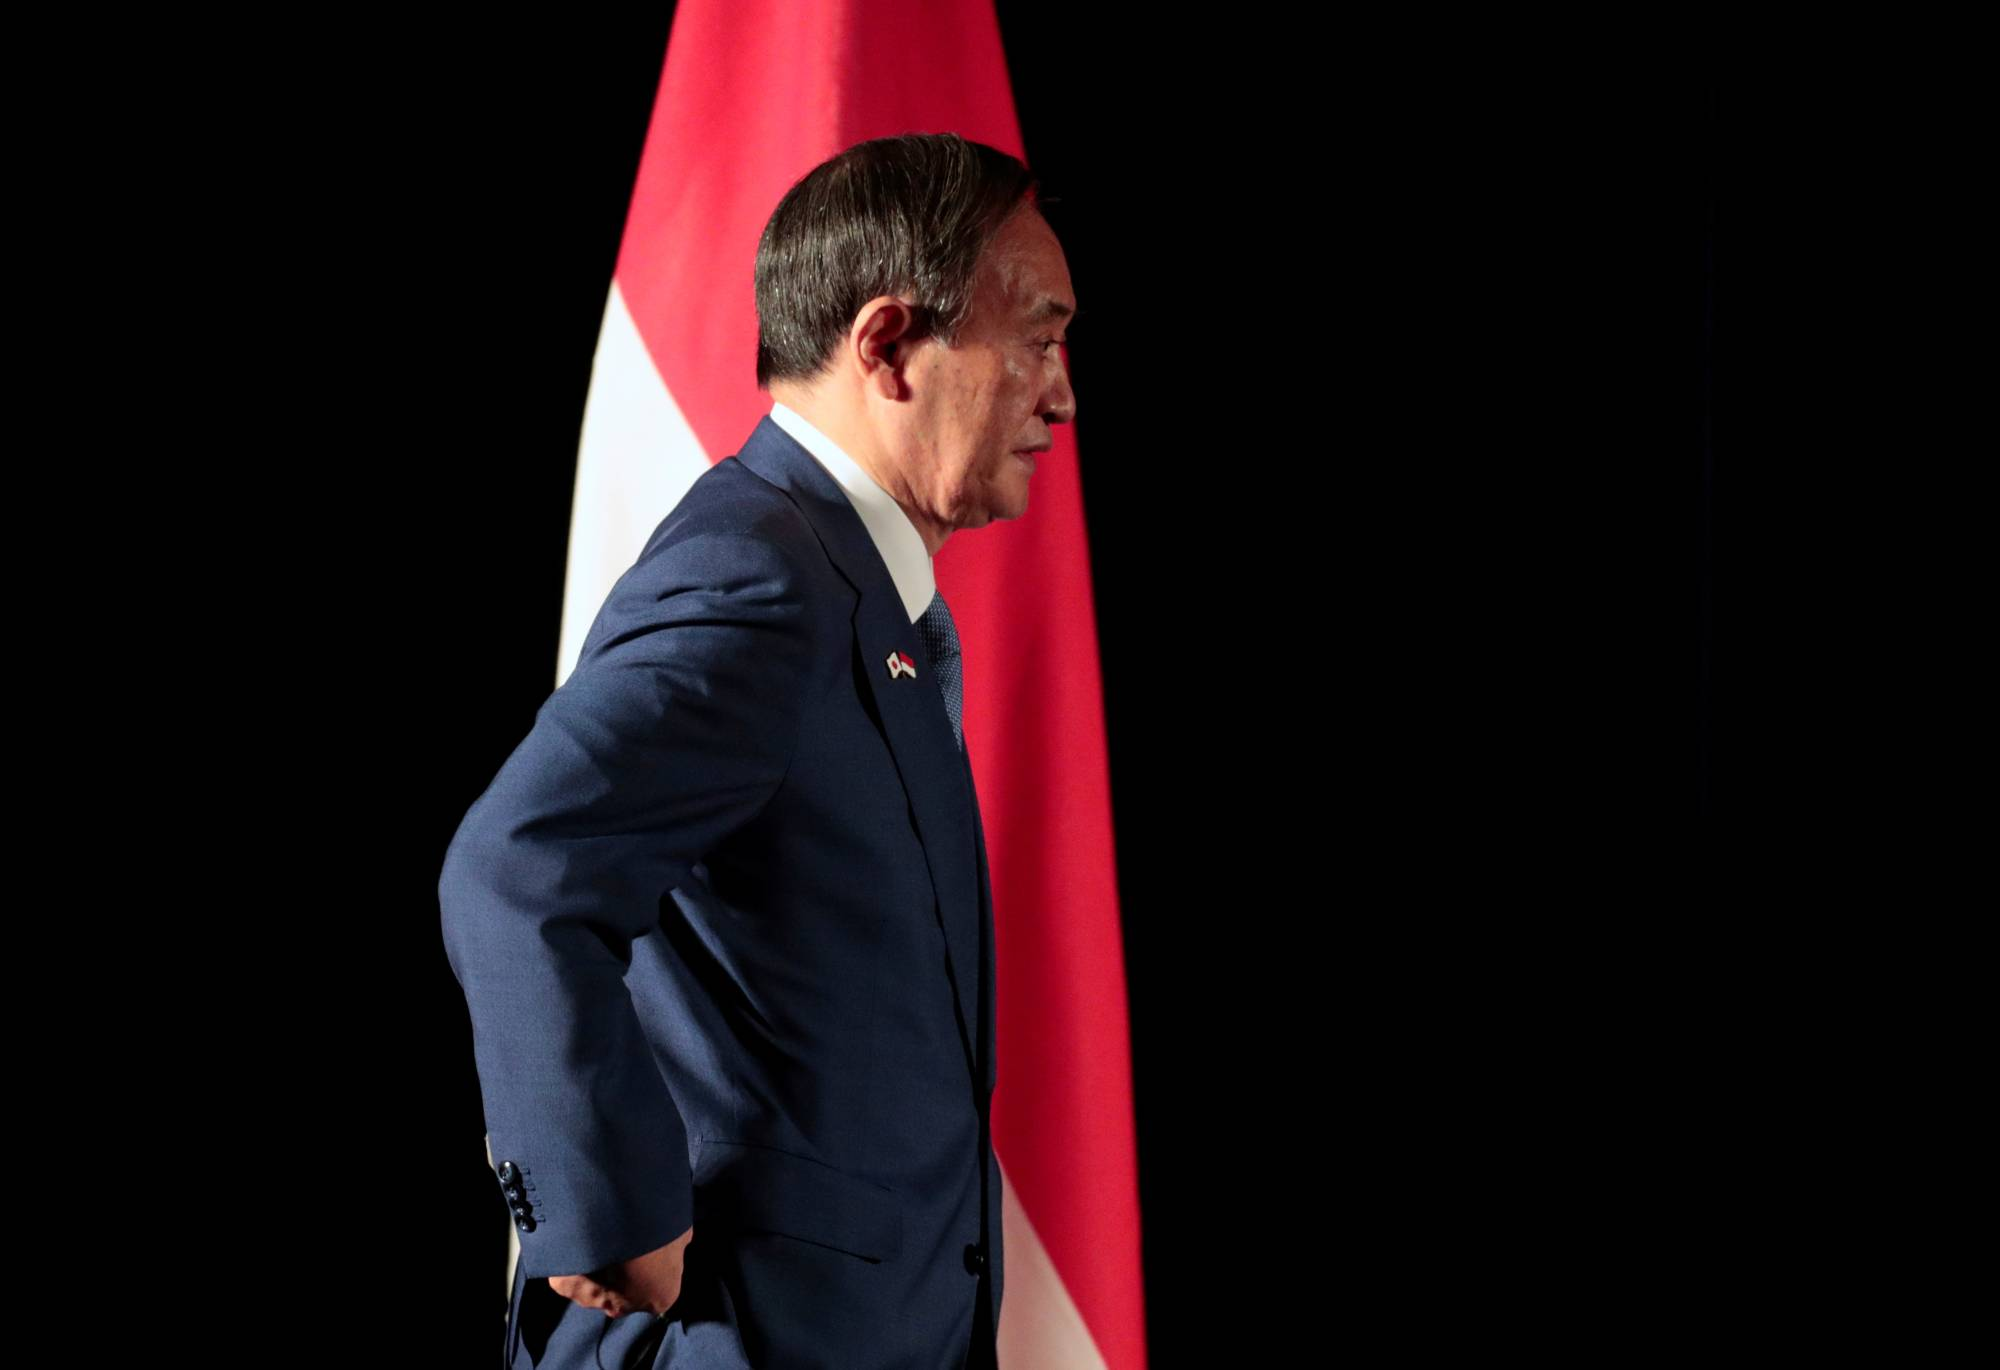 Prime Minister Yoshihide Suga walks past the Indonesian national flag as he arrives for a news conference in Jakarta on Wednesday. | POOL / VIA REUTERS